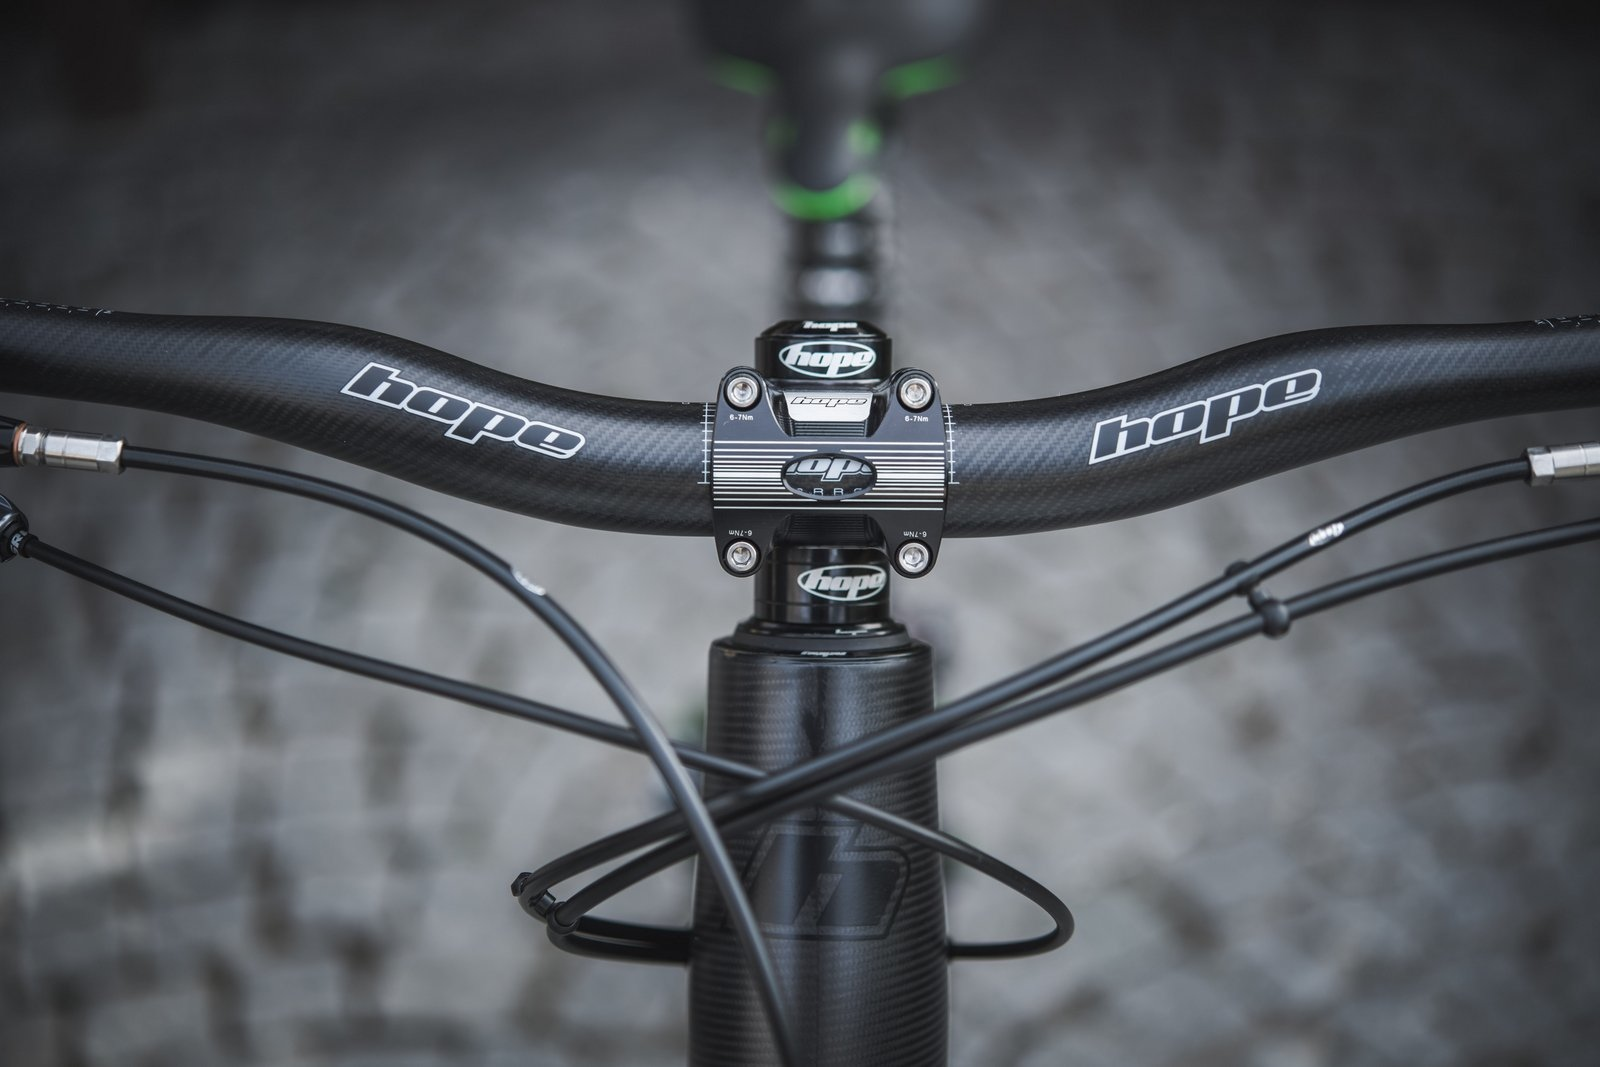 The Hope handlebar is the second carbon component to come out of the Barnoldswick factory.